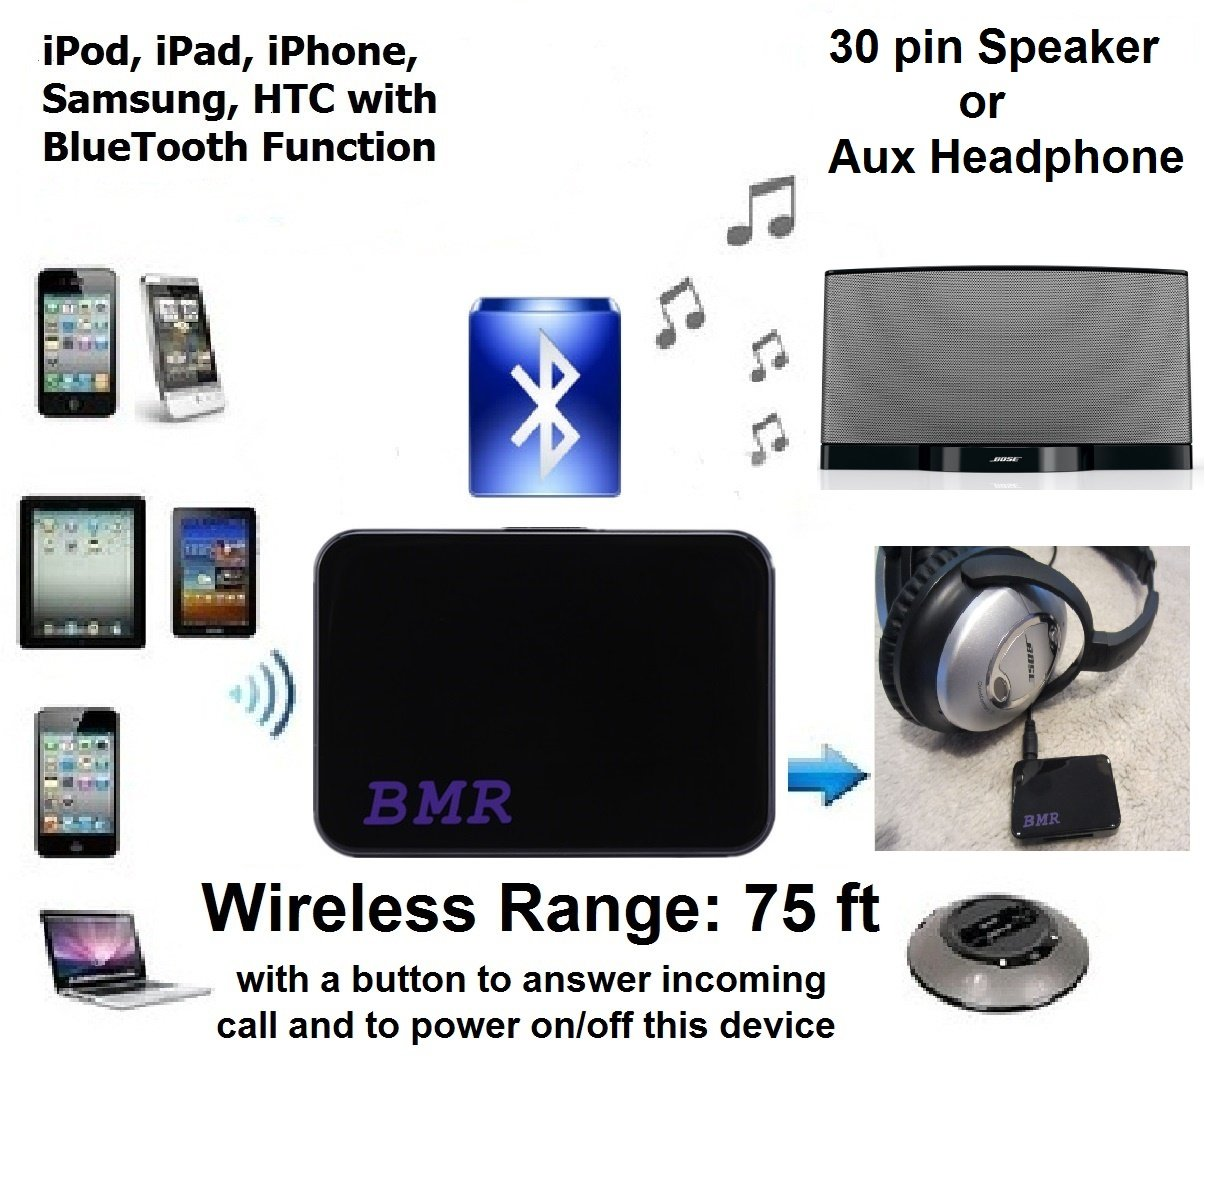 BMR A2DP 2in1 iPhone 7 Bluetooth Music Receiver Adapter For 30 Pin Dock Headphone: Bose Sony Beats iHome Echo Alexa Motorcycle Car Stereo With 30 Pin Dock & 3.5mm Aux Input Extra Long Wireless Range